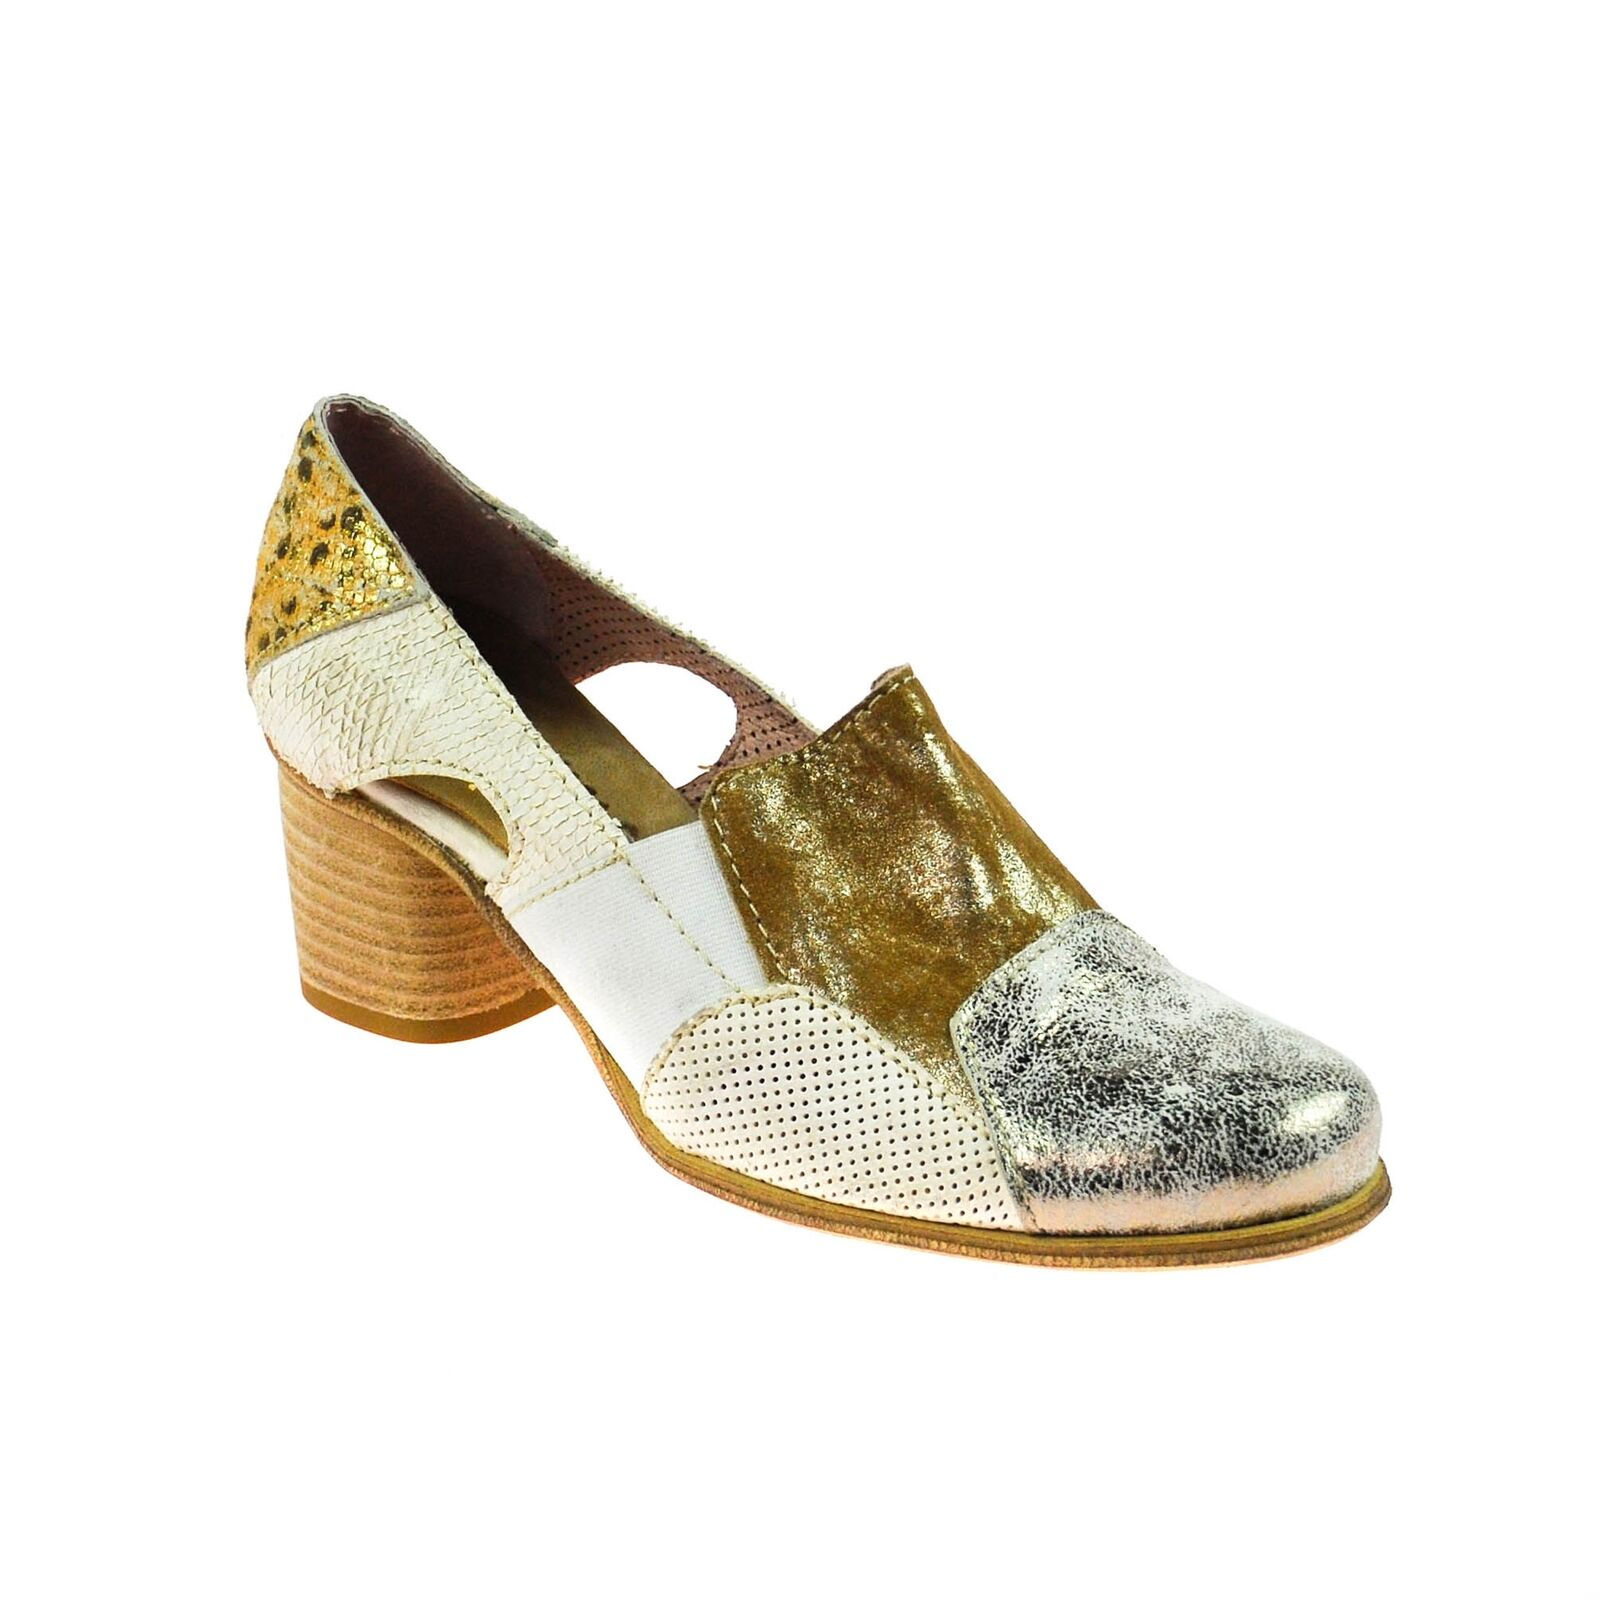 Charme femmes Chaussure Cuir marron or blanc argent Taille 37